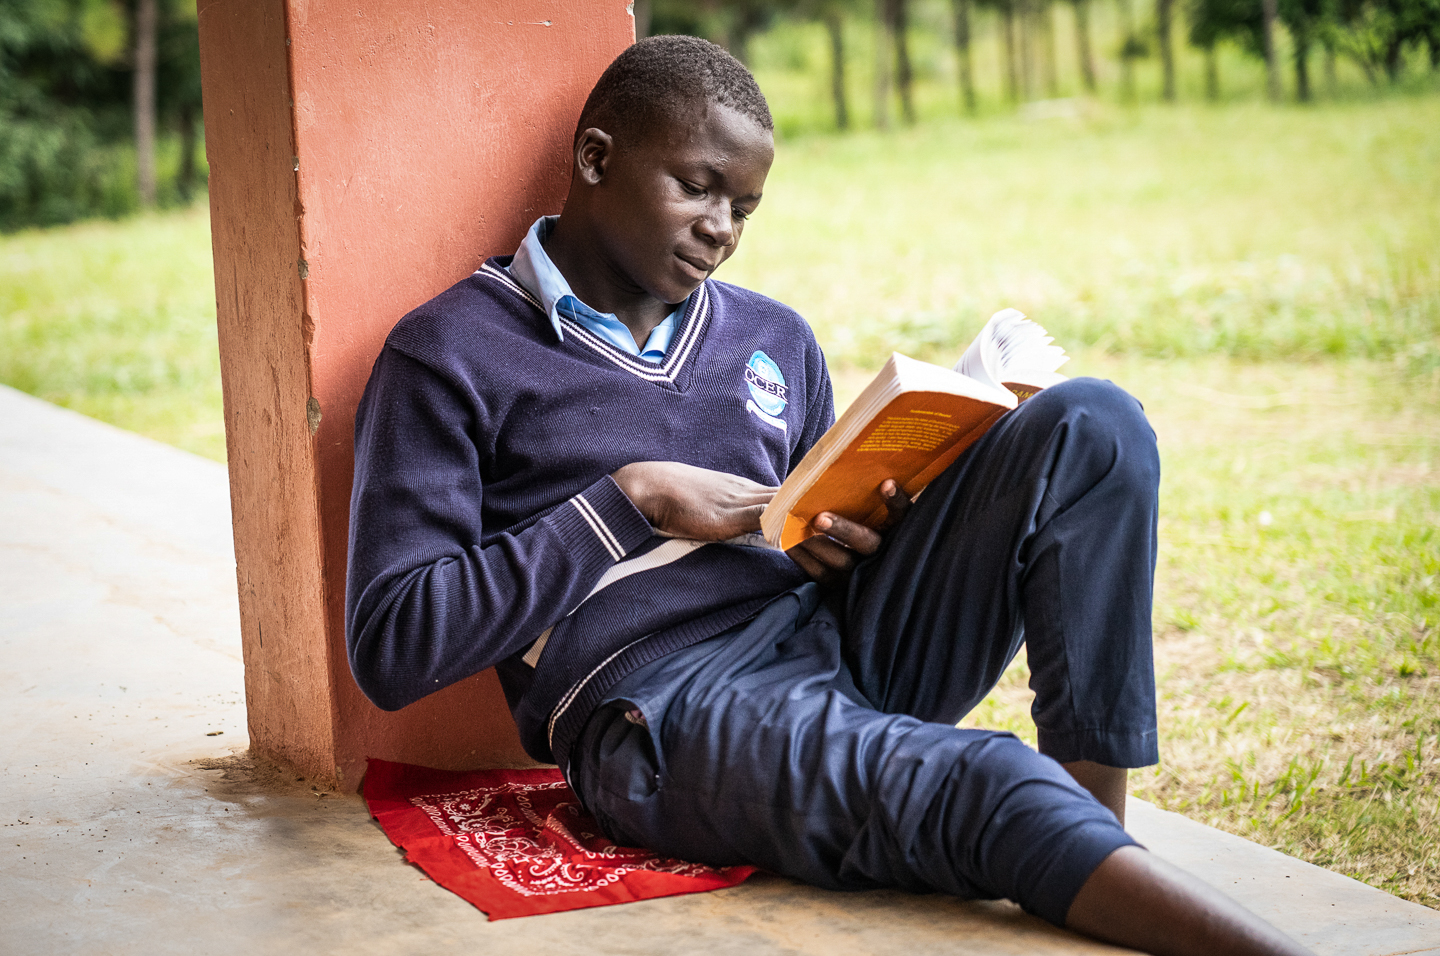 With the day off due to elections, a student catches up with his studies.